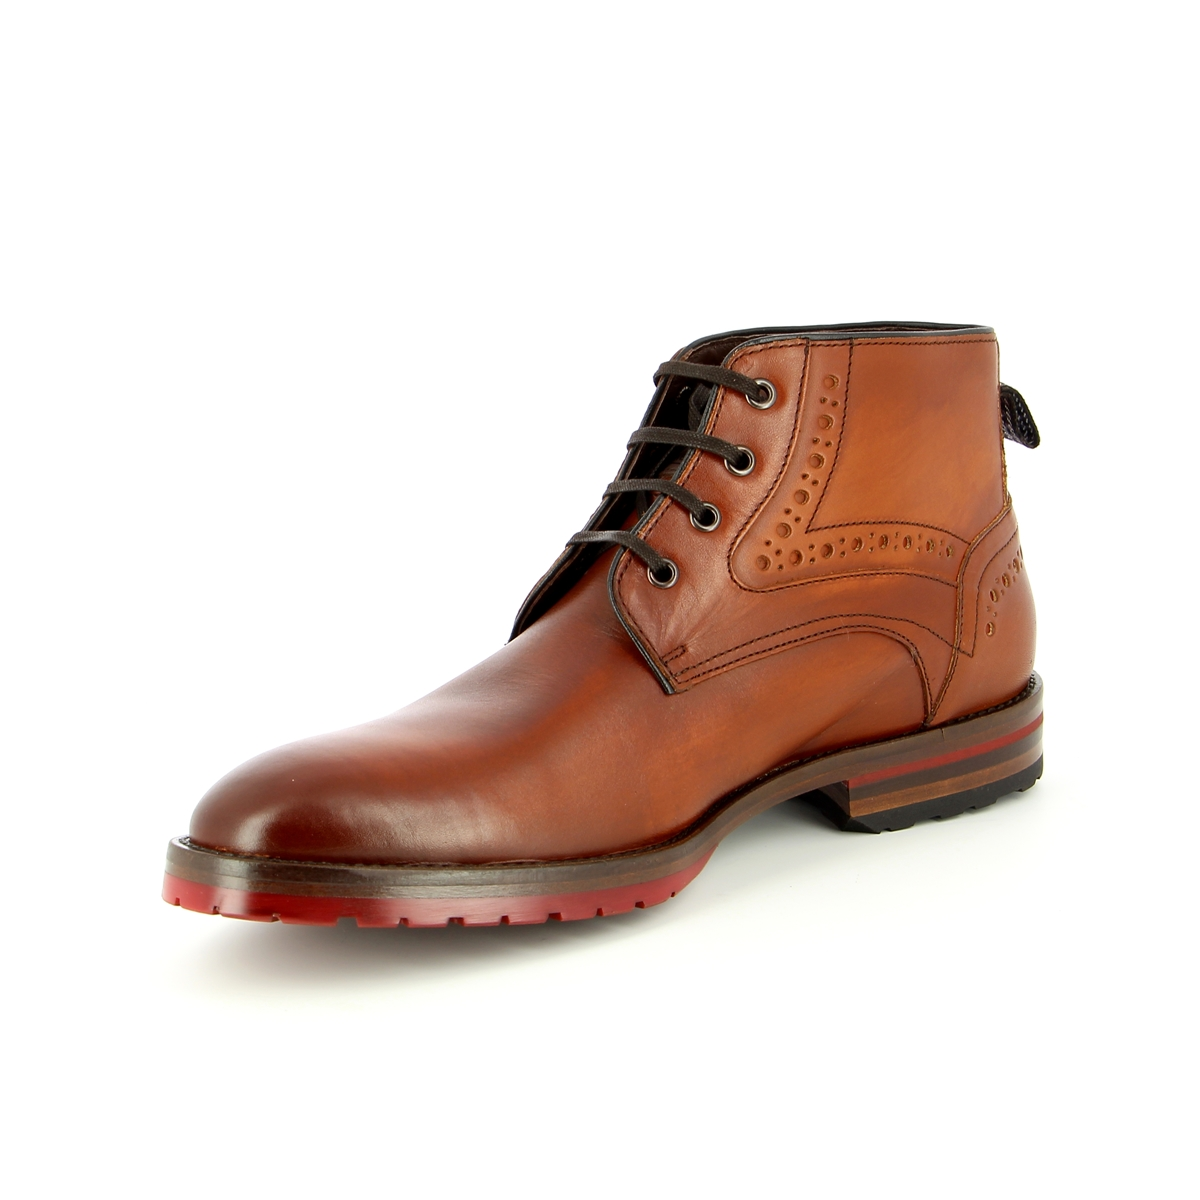 Floris Van Bommel Bottines cognac